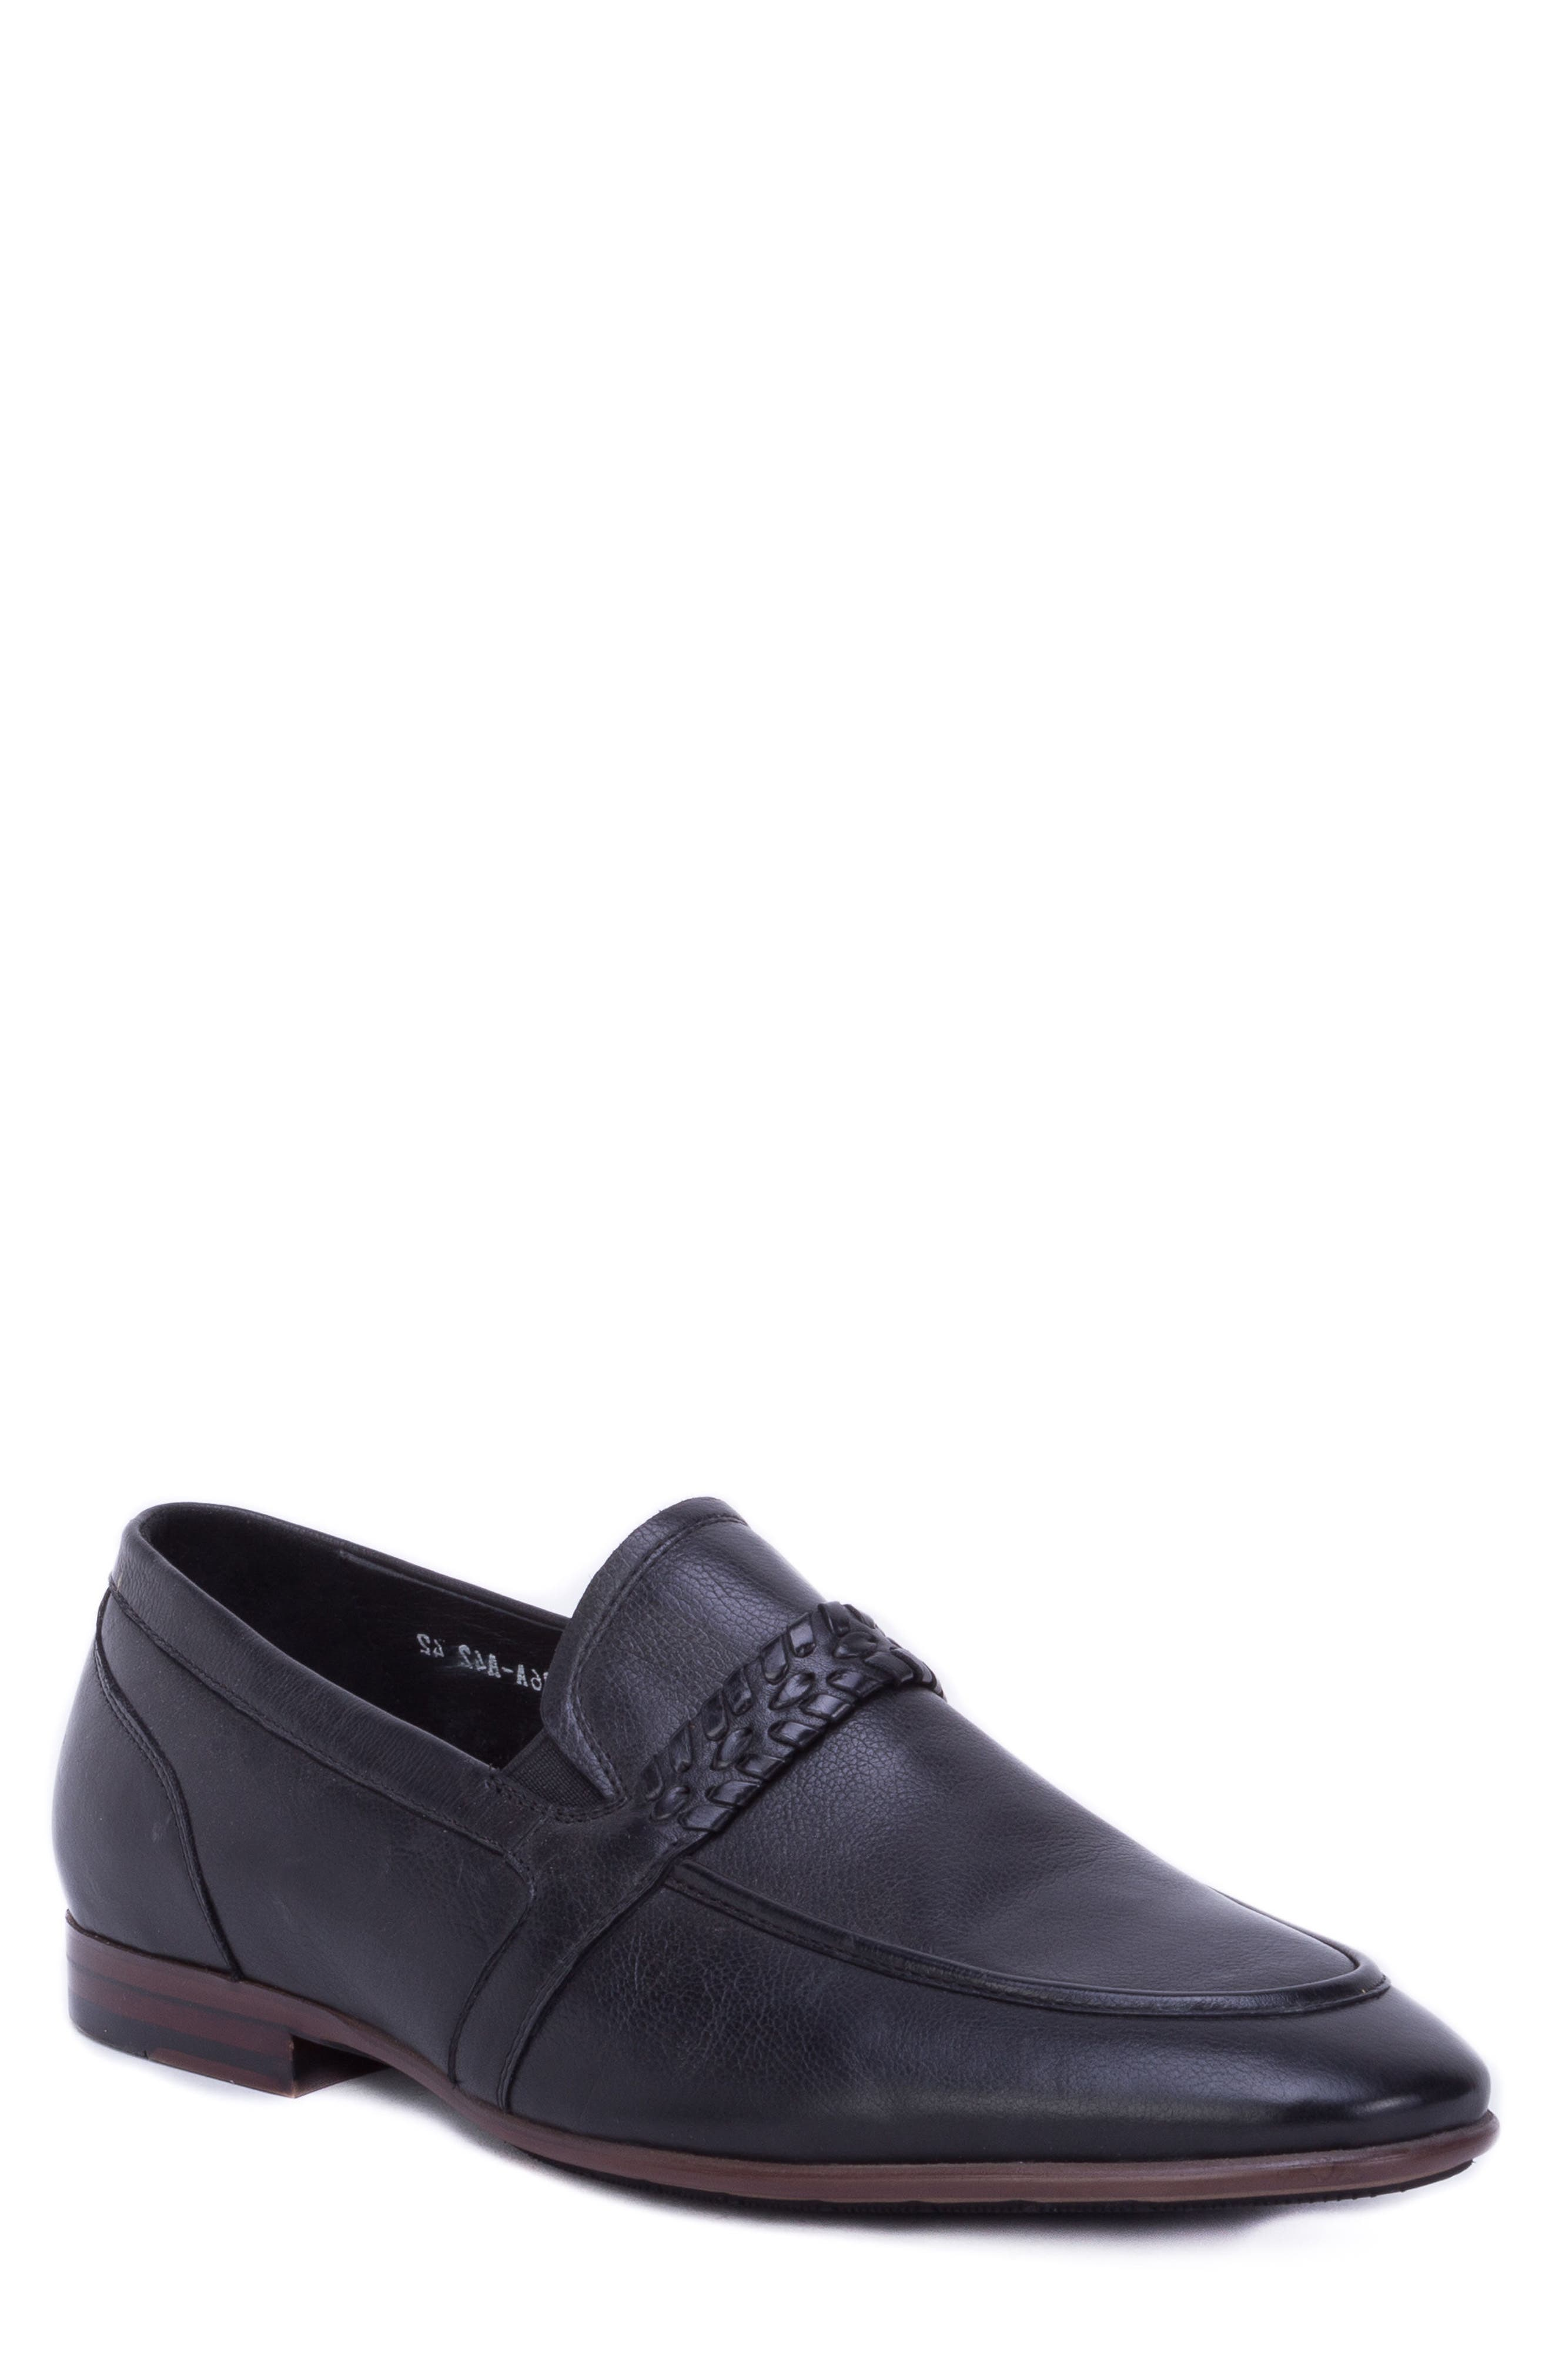 Robinson Whipstitch Apron Toe Loafer,                             Main thumbnail 1, color,                             BLACK LEATHER